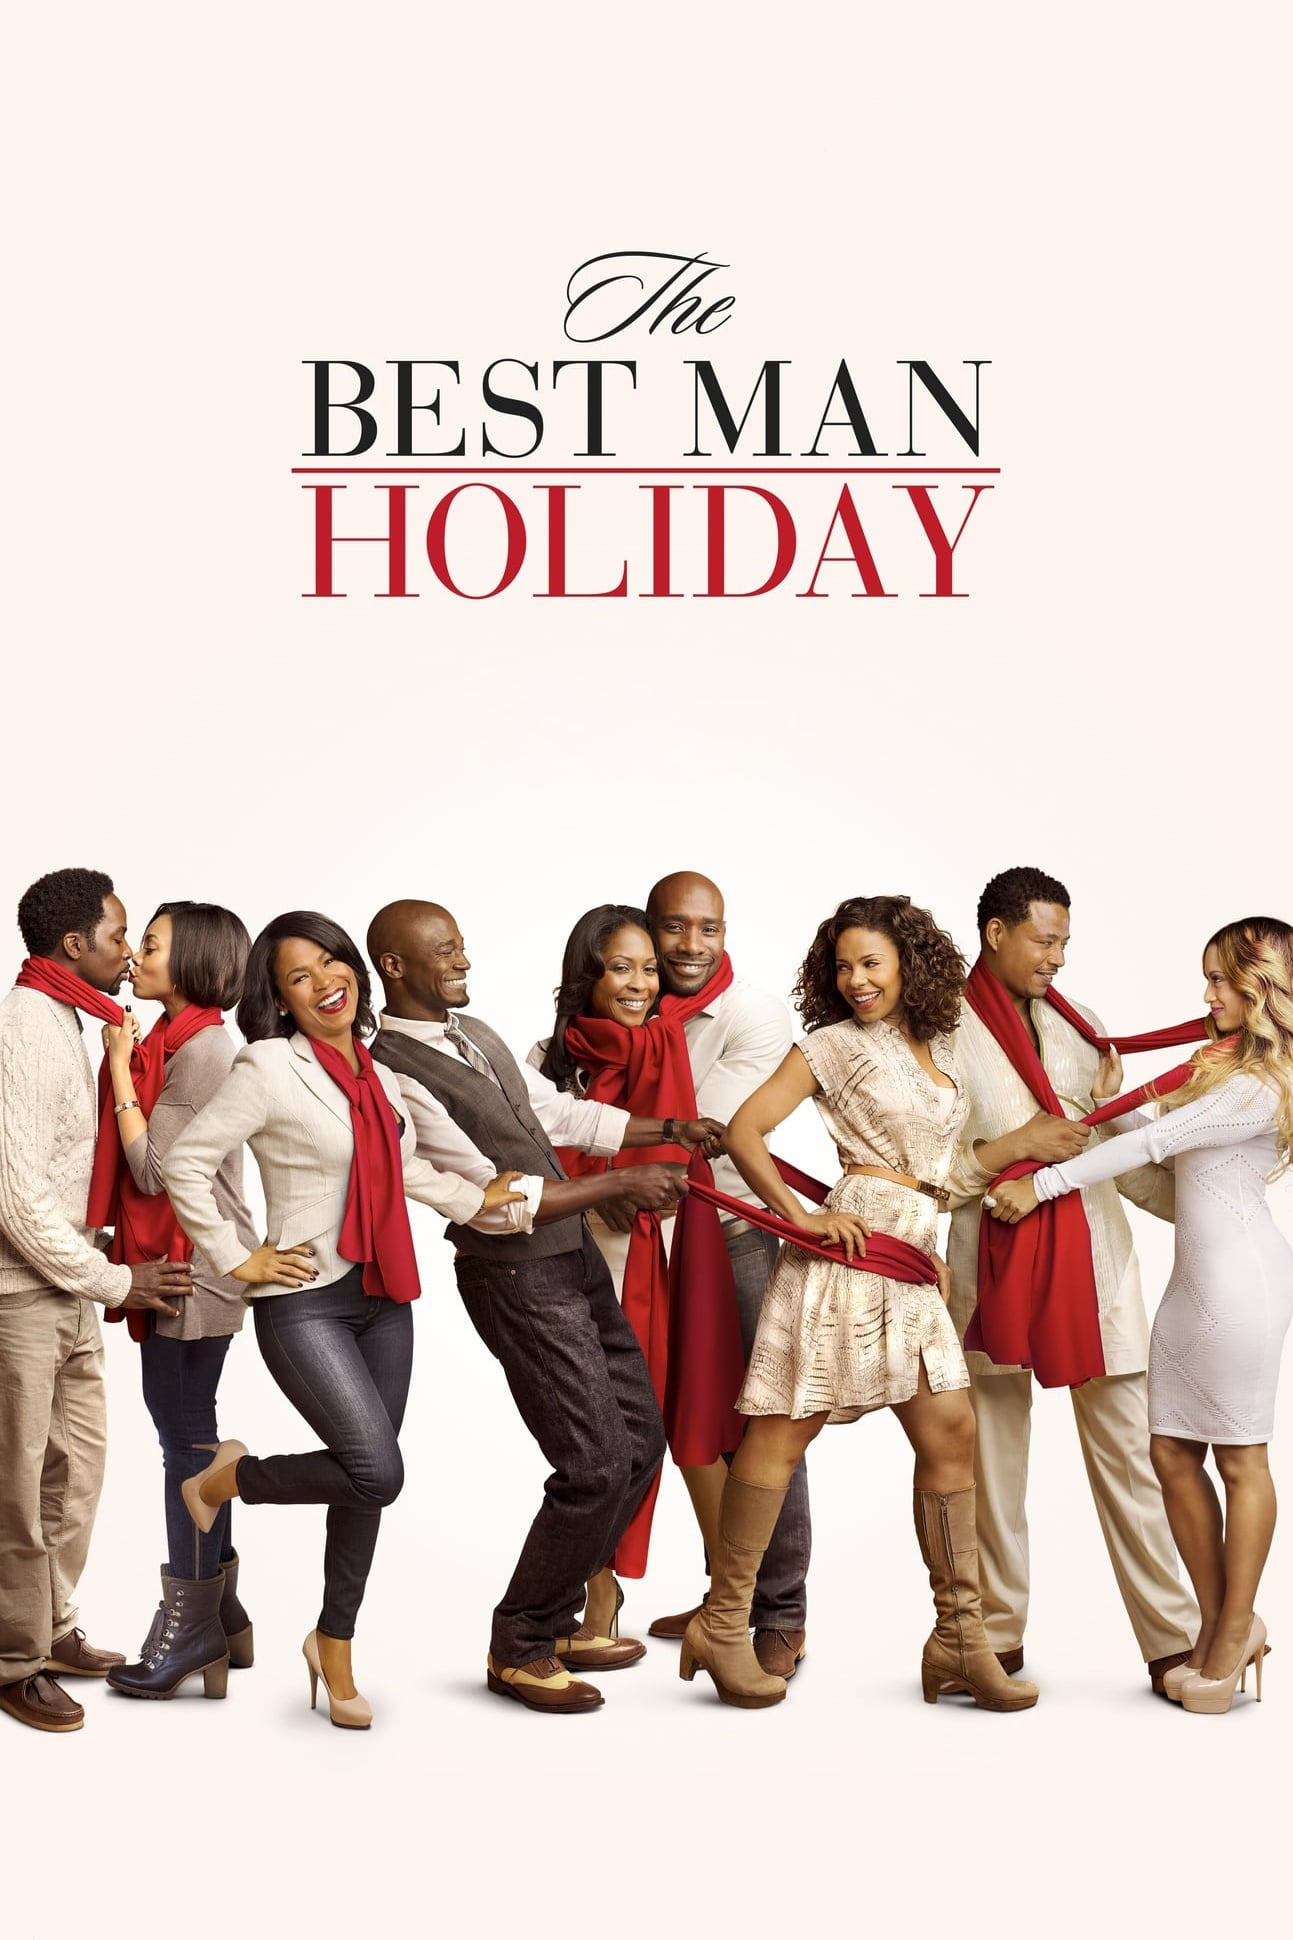 El reencuentro (The Best Man Holiday)